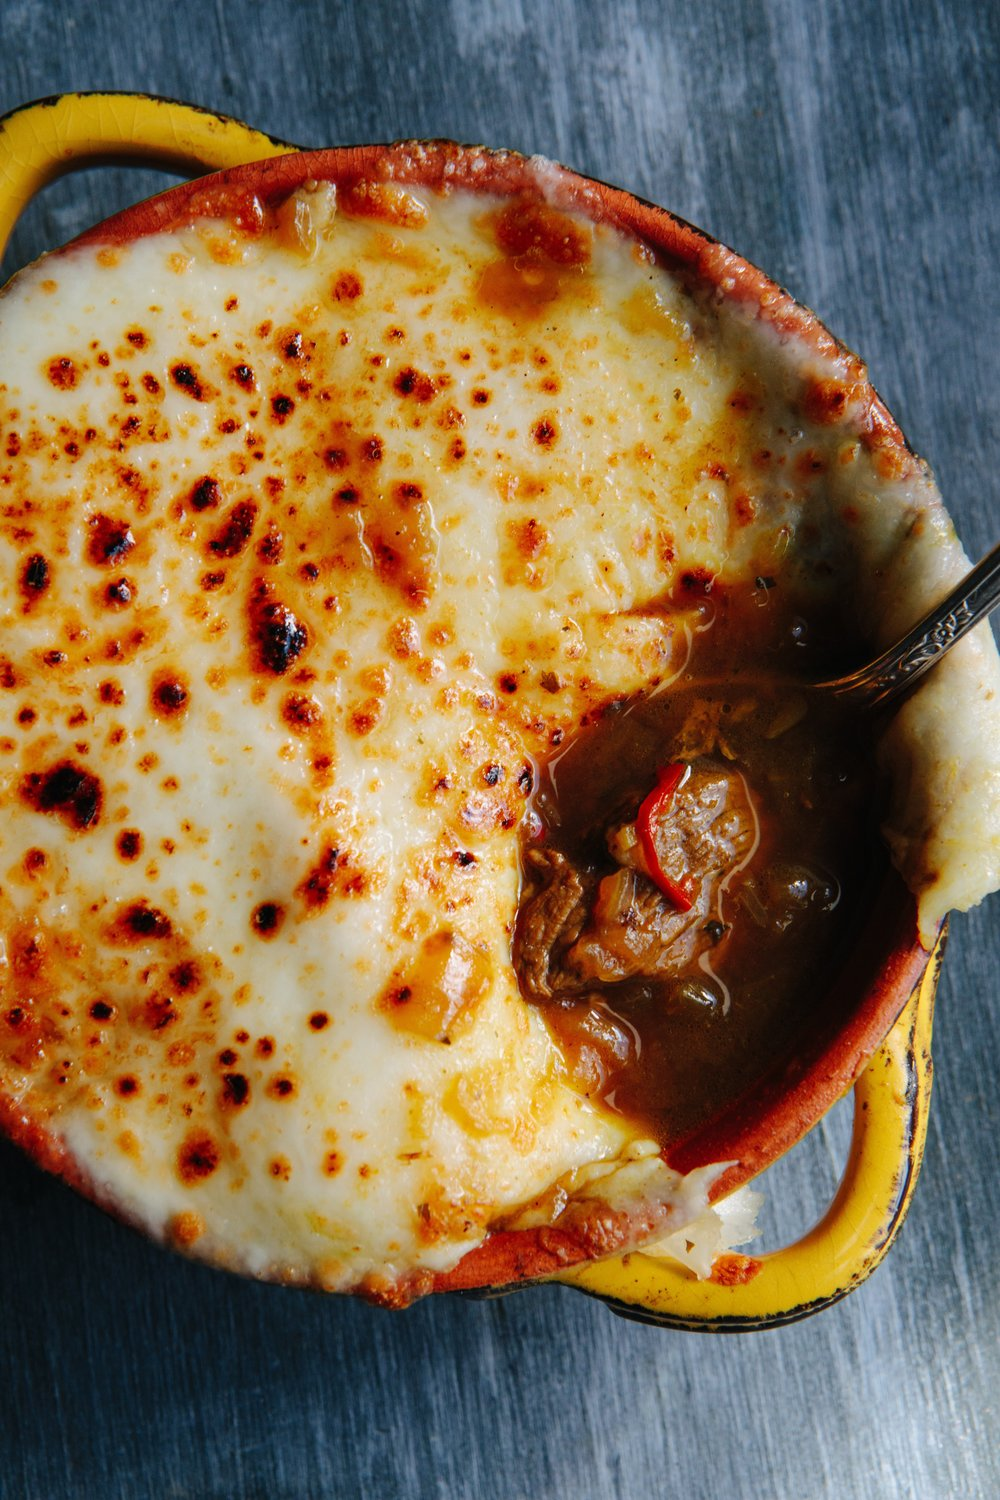 THE ART OF THE MASHUP_Lamb Vindaloo French Onion Soup_BRIAN SAMUELS PHOTOGRAPHY-9421.jpg